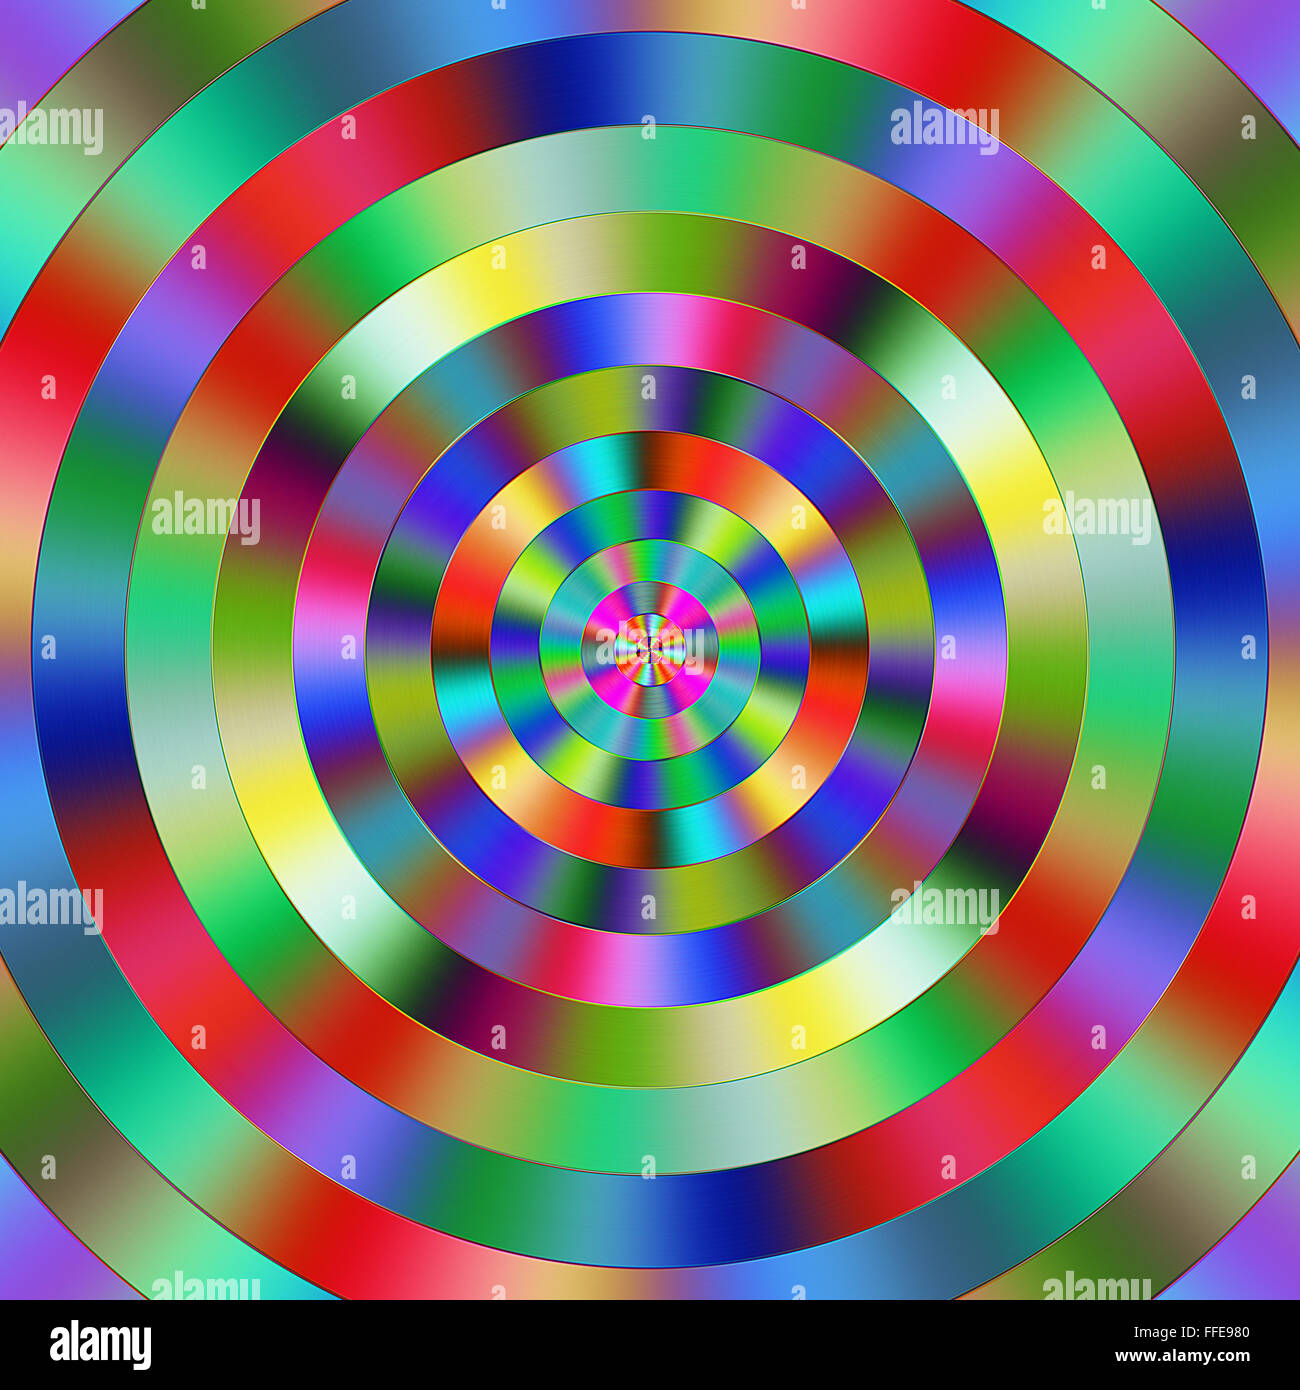 Multicoloured vibrant graduated circles. - Stock Image